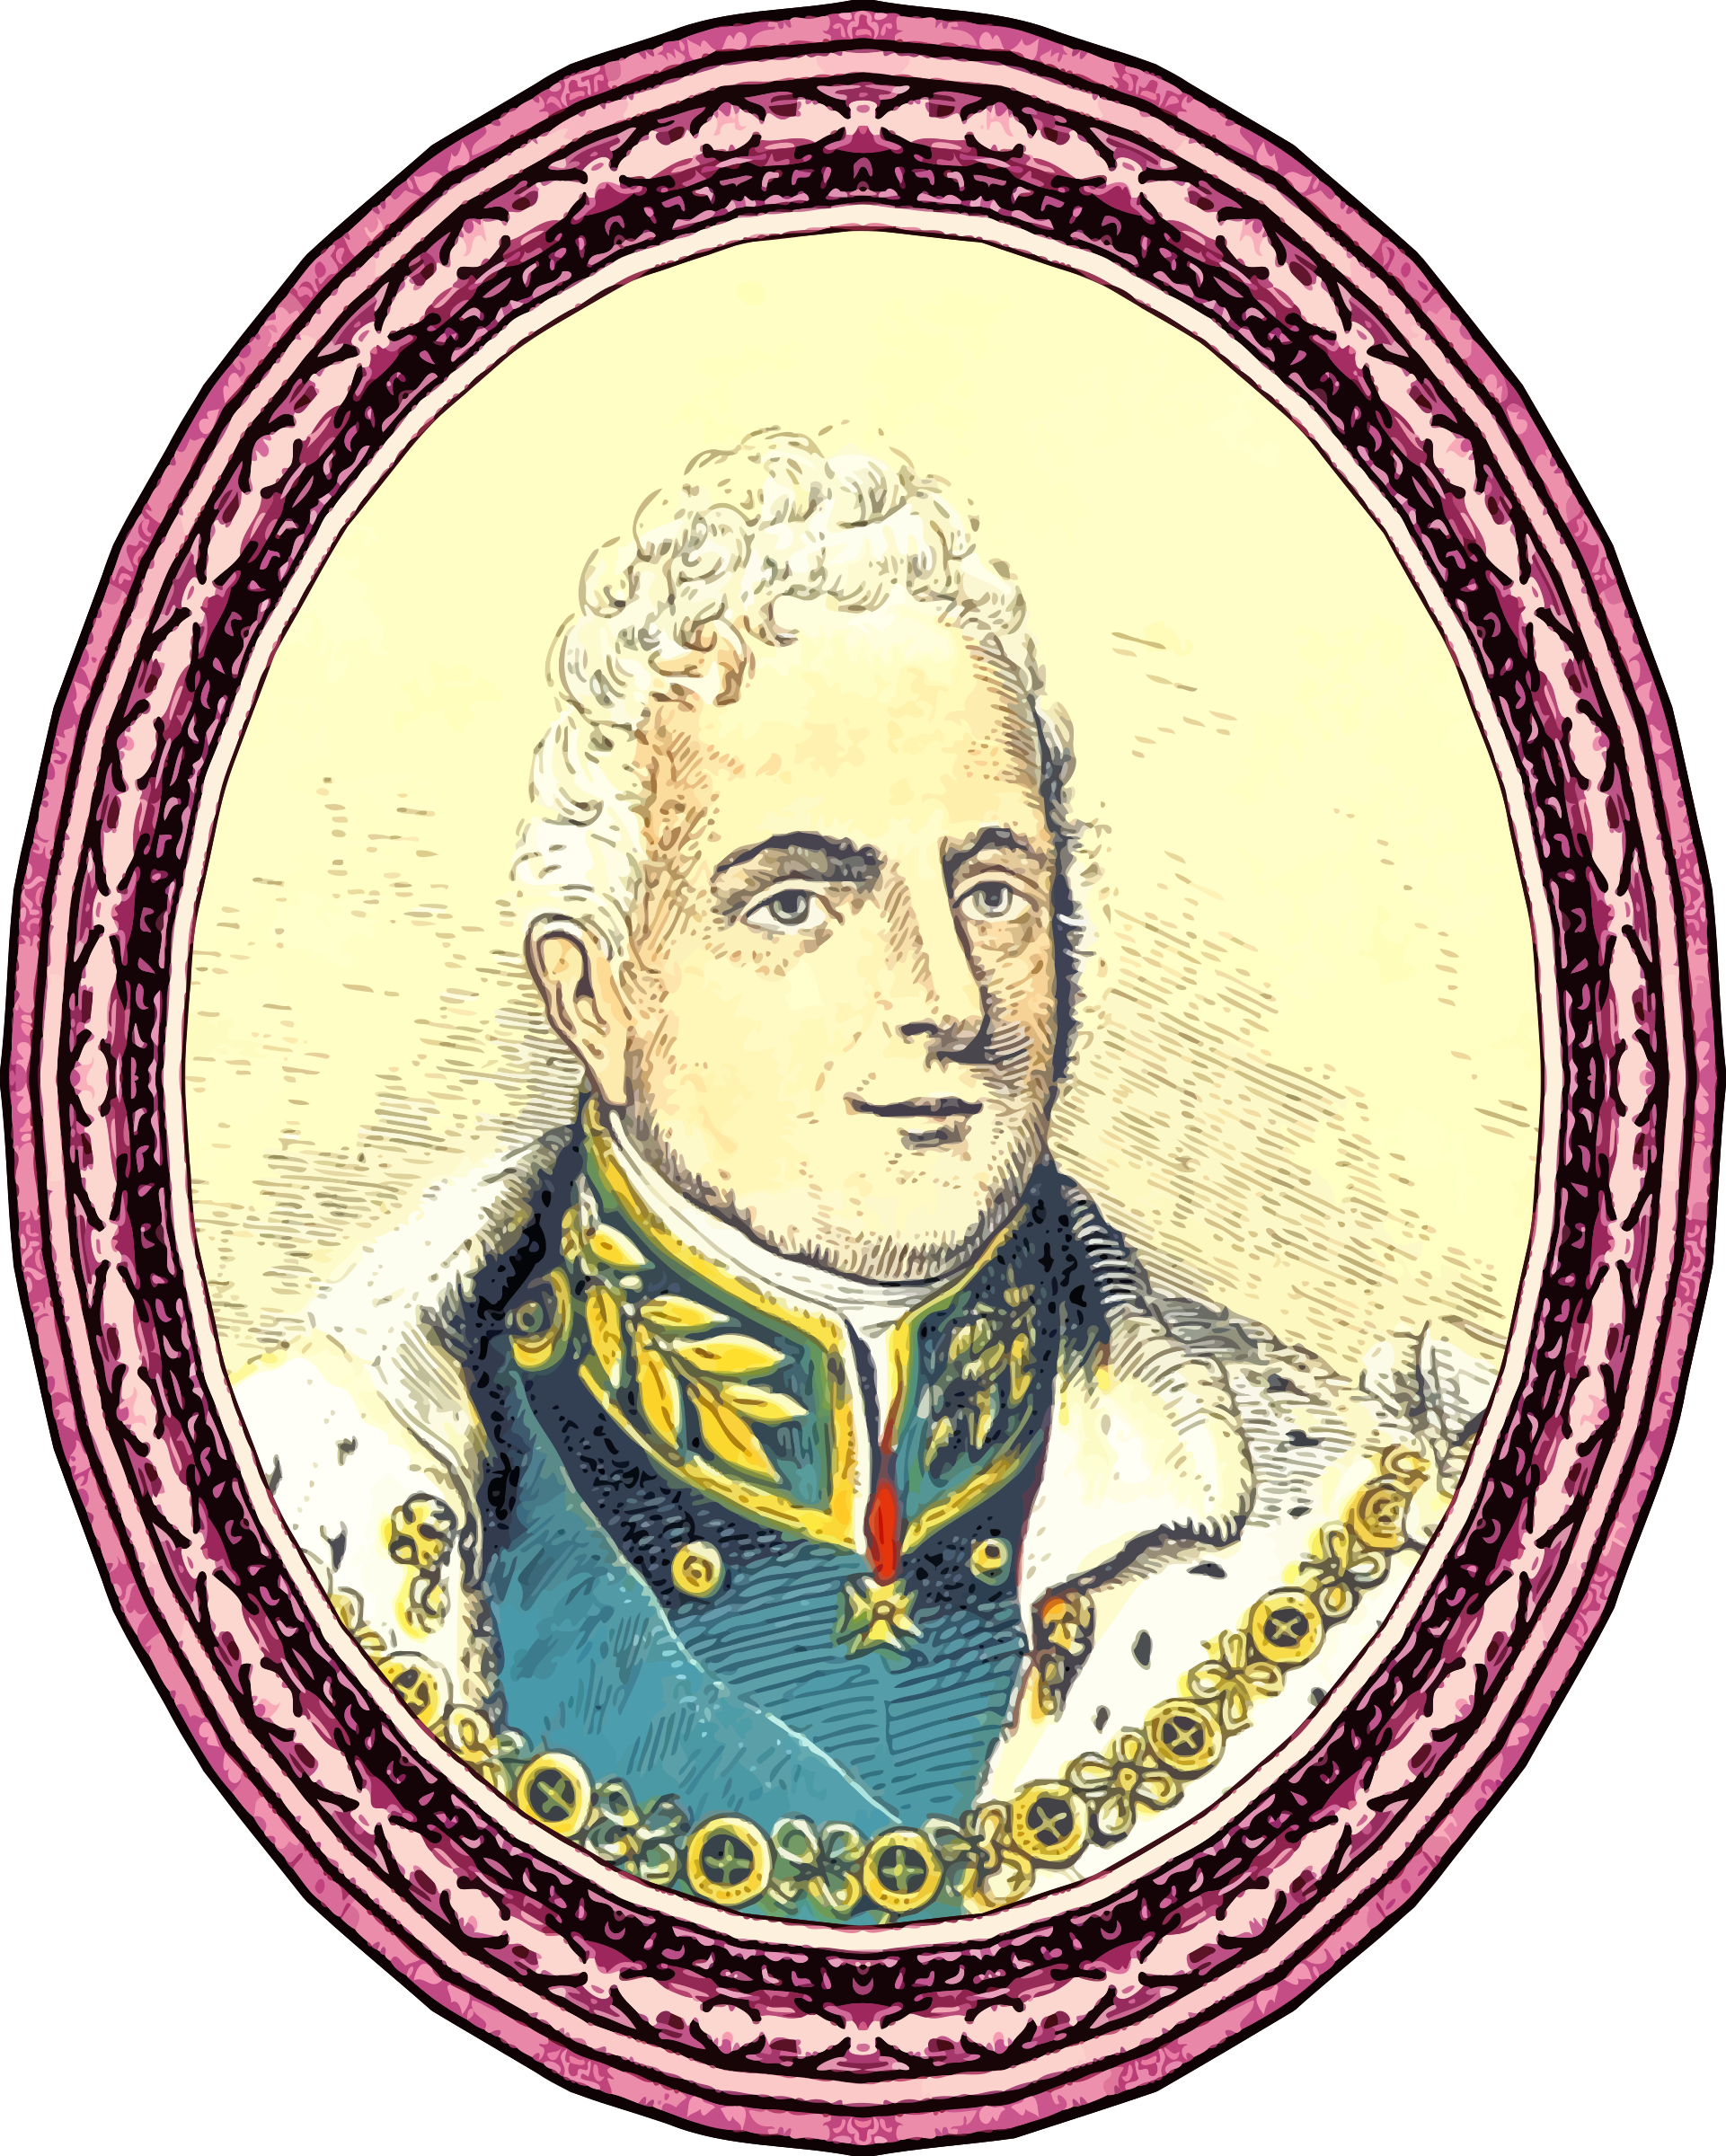 King William IV (framed) by Firkin